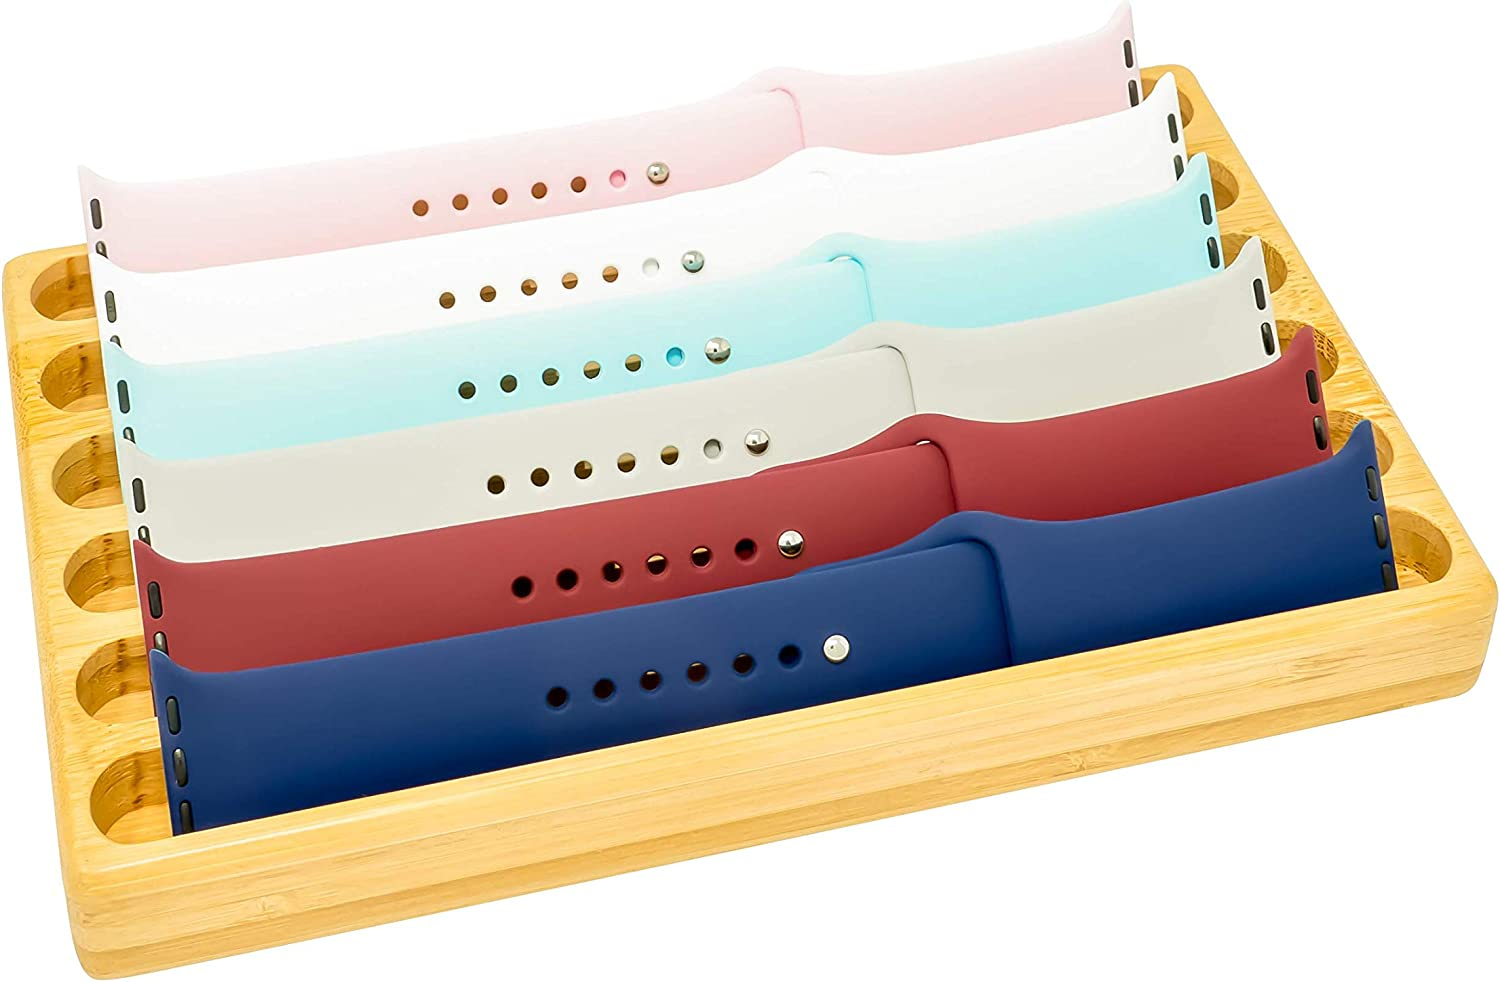 Wooden Watch Band Organizer - Works with All Apple Watch Bands - Watch Band Holder - Wooden Watch Stand Display – Birthday Gift for Her